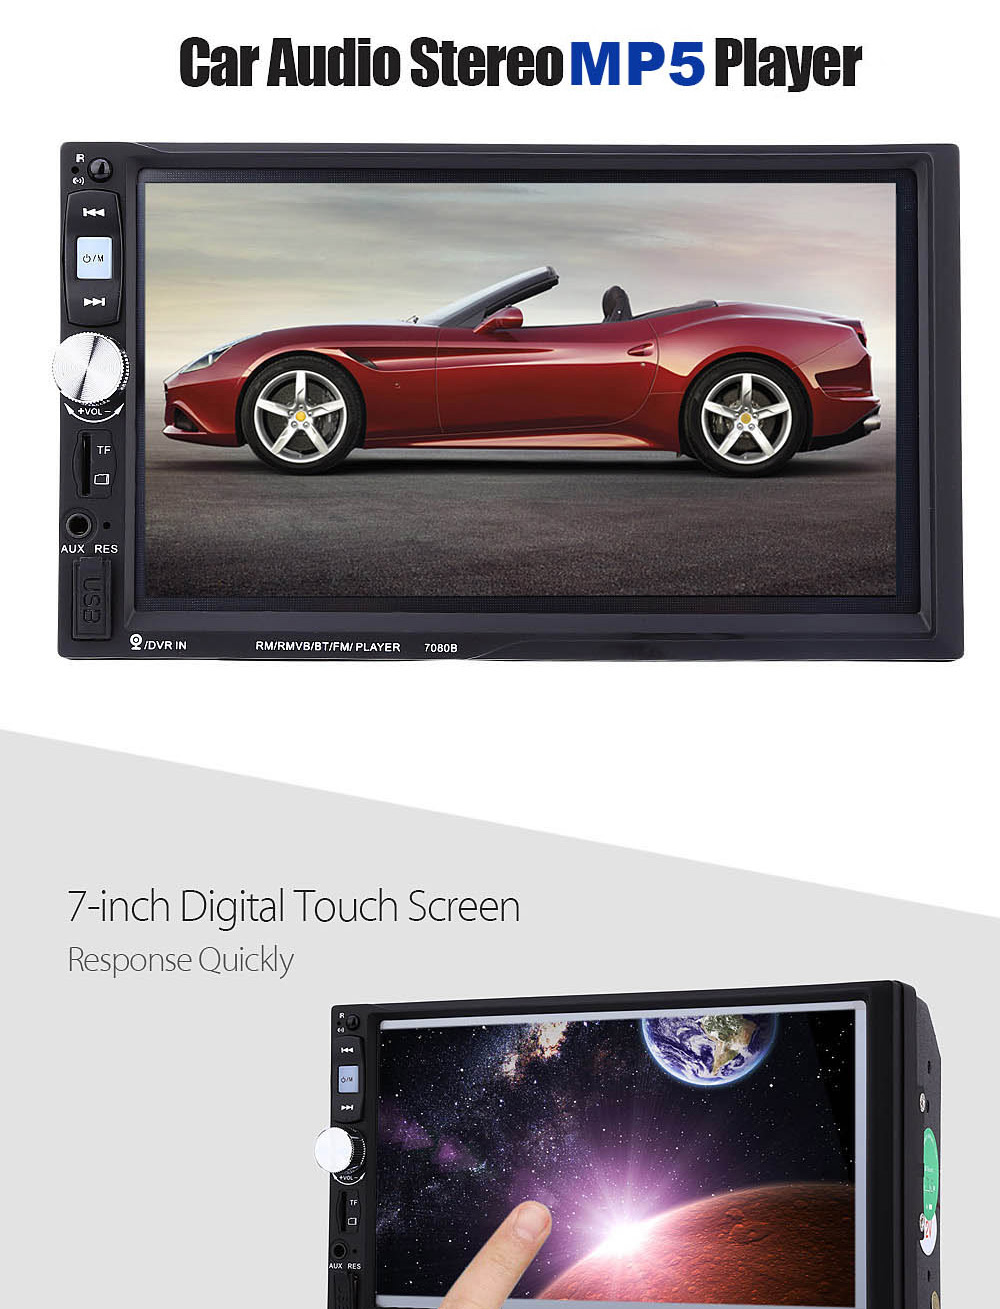 7080B 7 inch Car Audio Stereo MP5 Player 12V Auto Video Remote Control with Rearview Camera